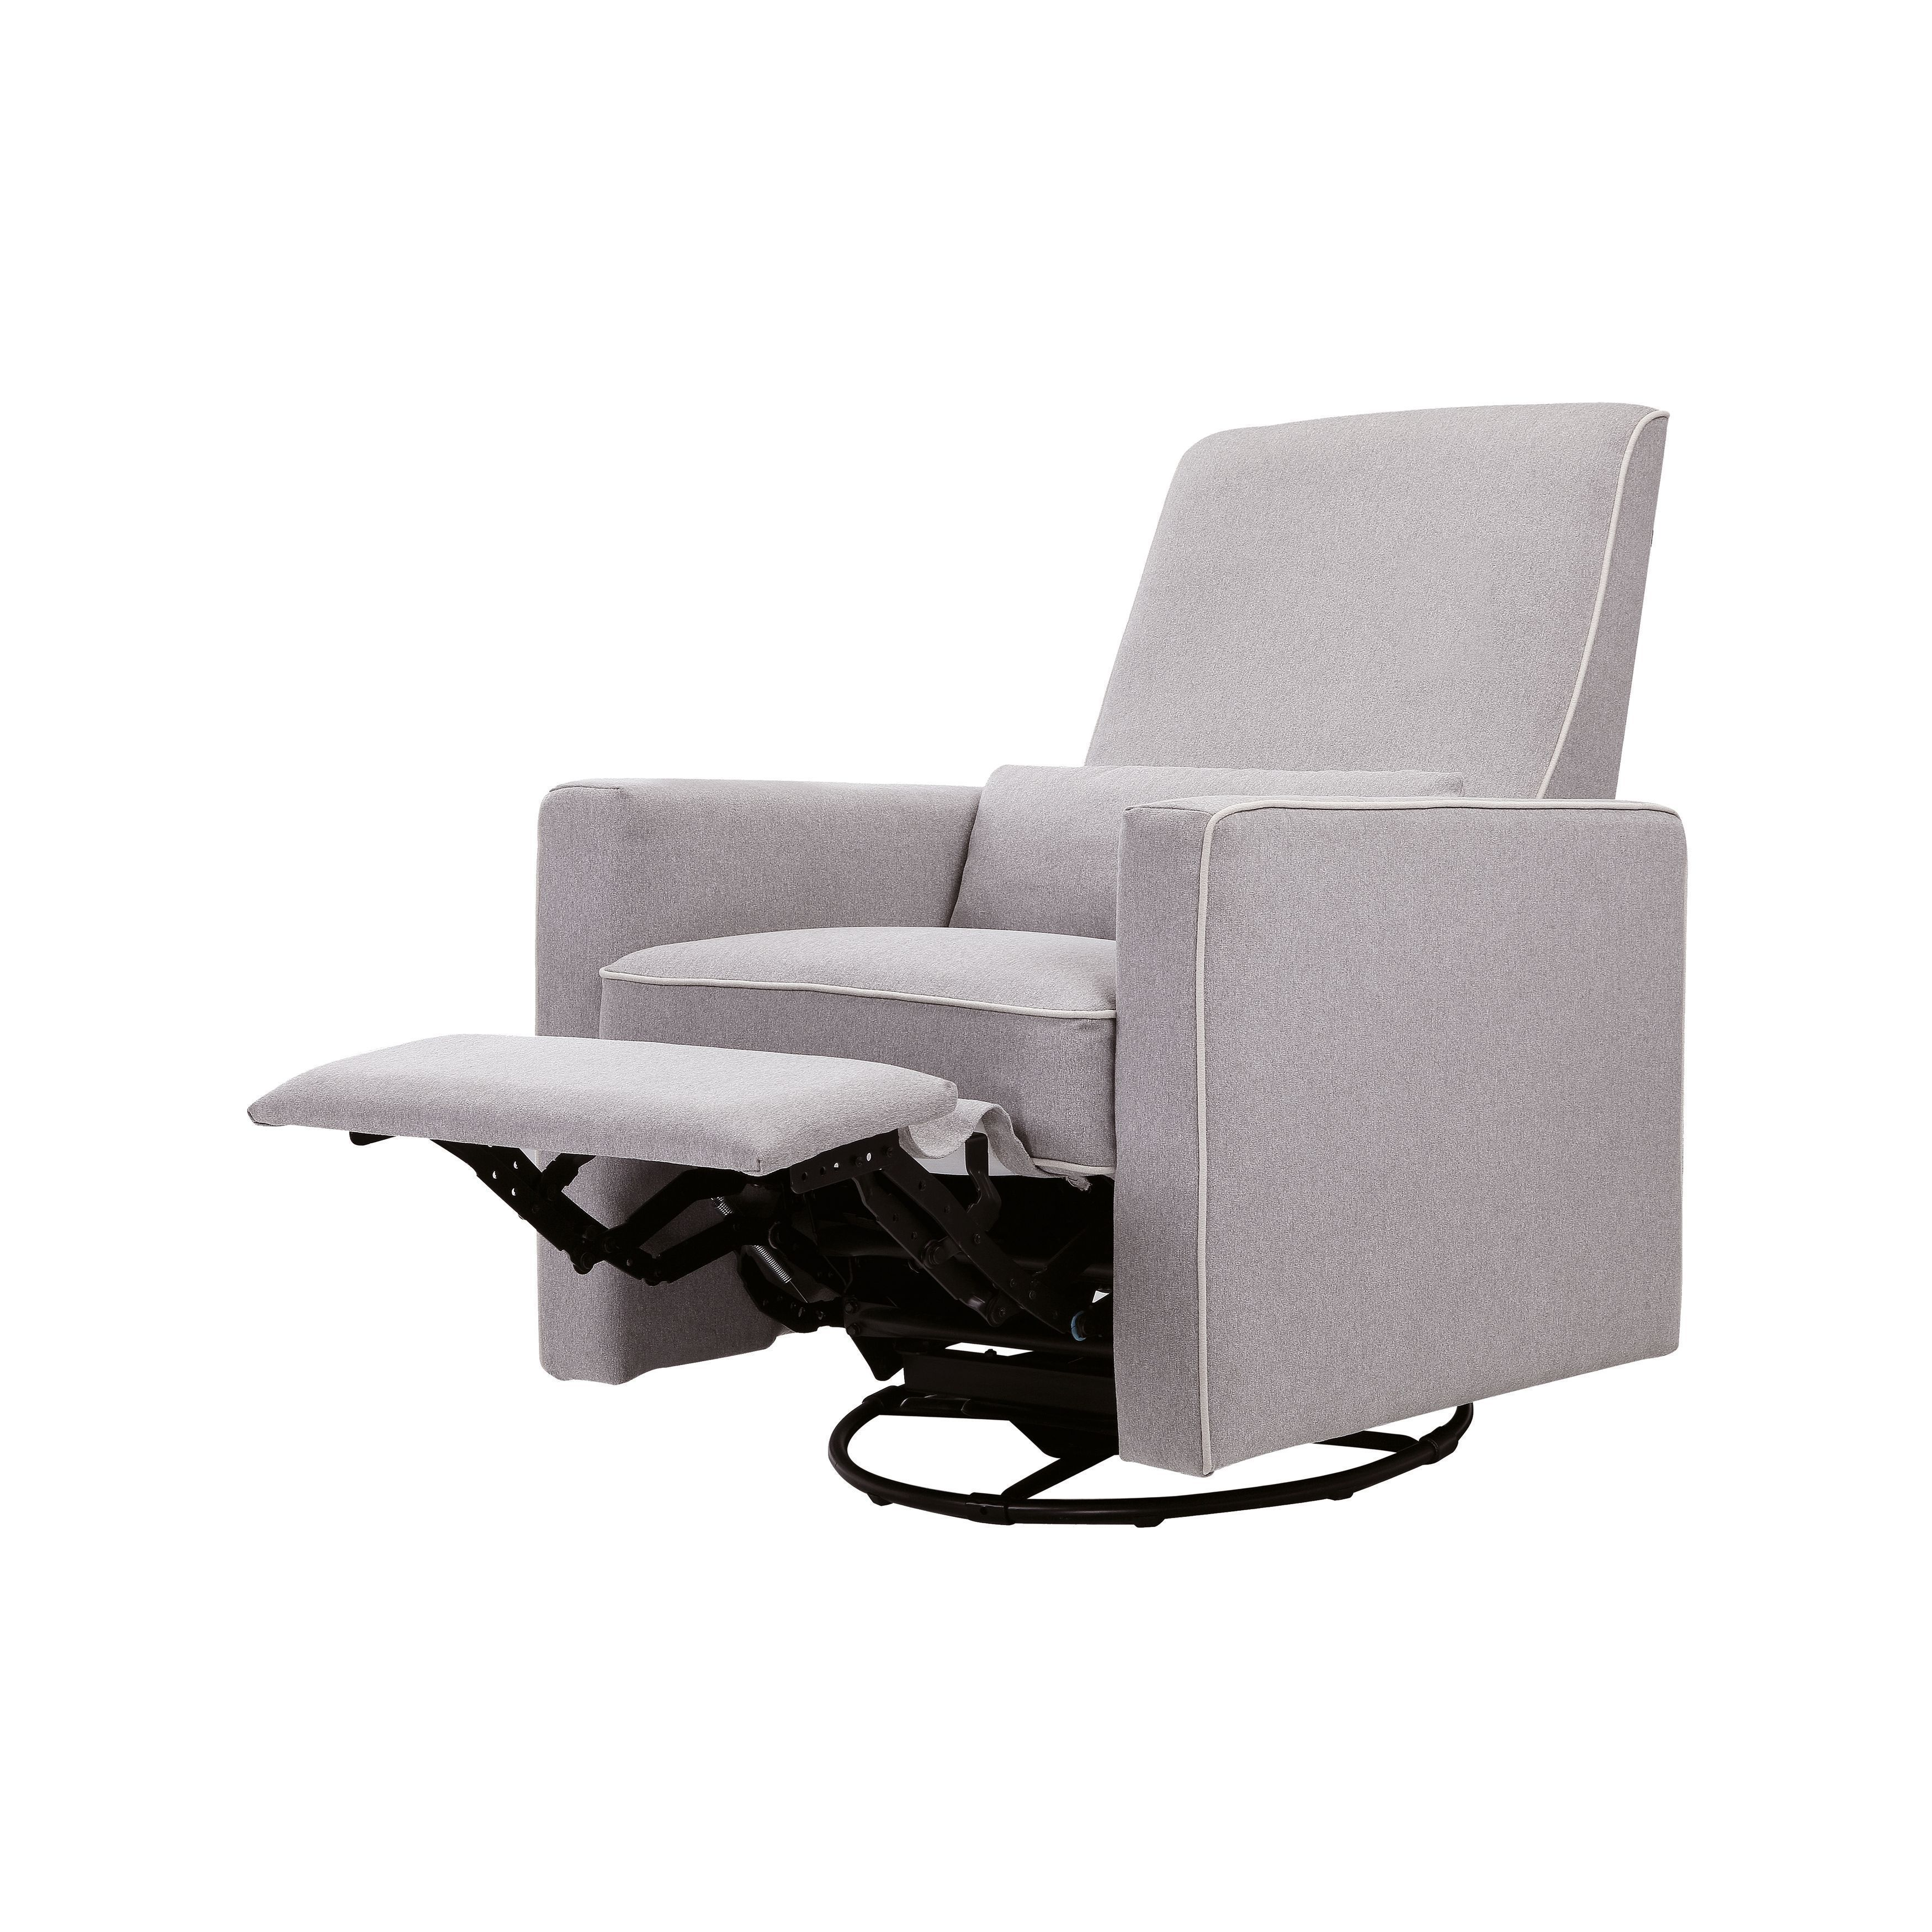 Admirable Davinci Piper All Purpose Upholstered Recliner And Swivel Glider Grey With Machost Co Dining Chair Design Ideas Machostcouk